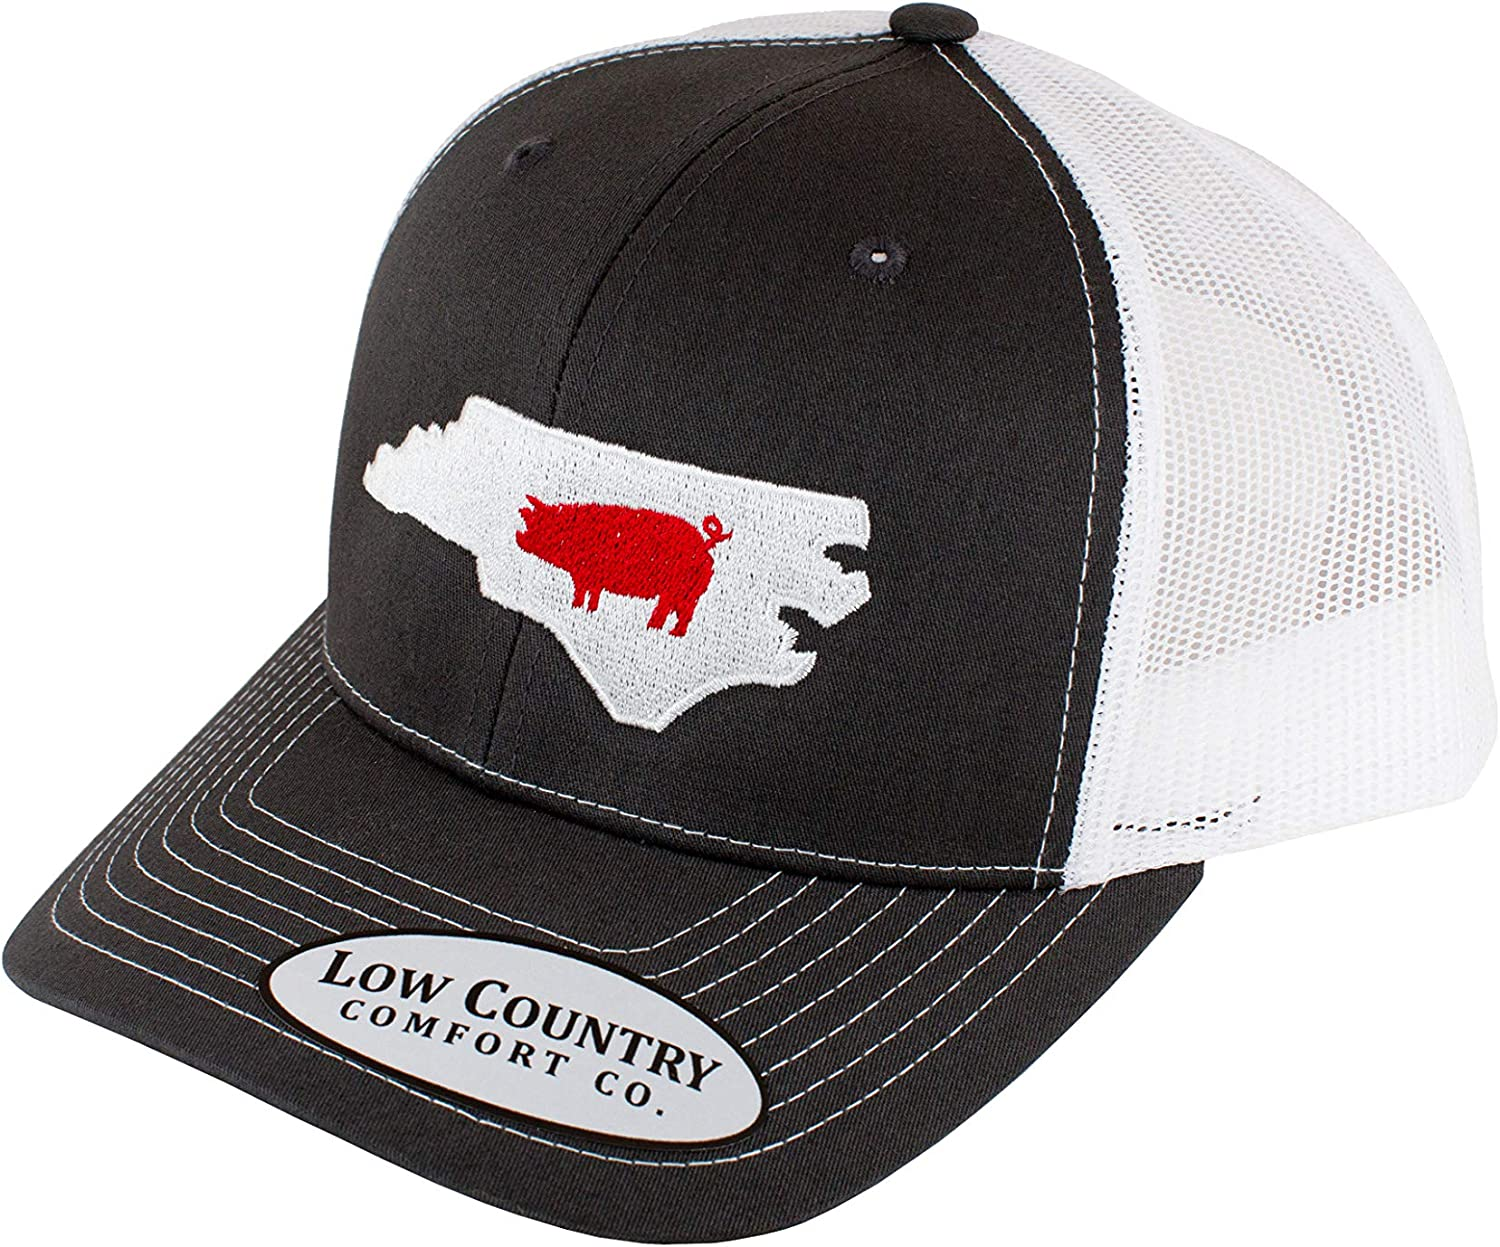 Low Country Clothing Company Official North Carolina Pig Adjustable Hat - Embroidered on Richardson 112 Trucker Hat (Charcoal)